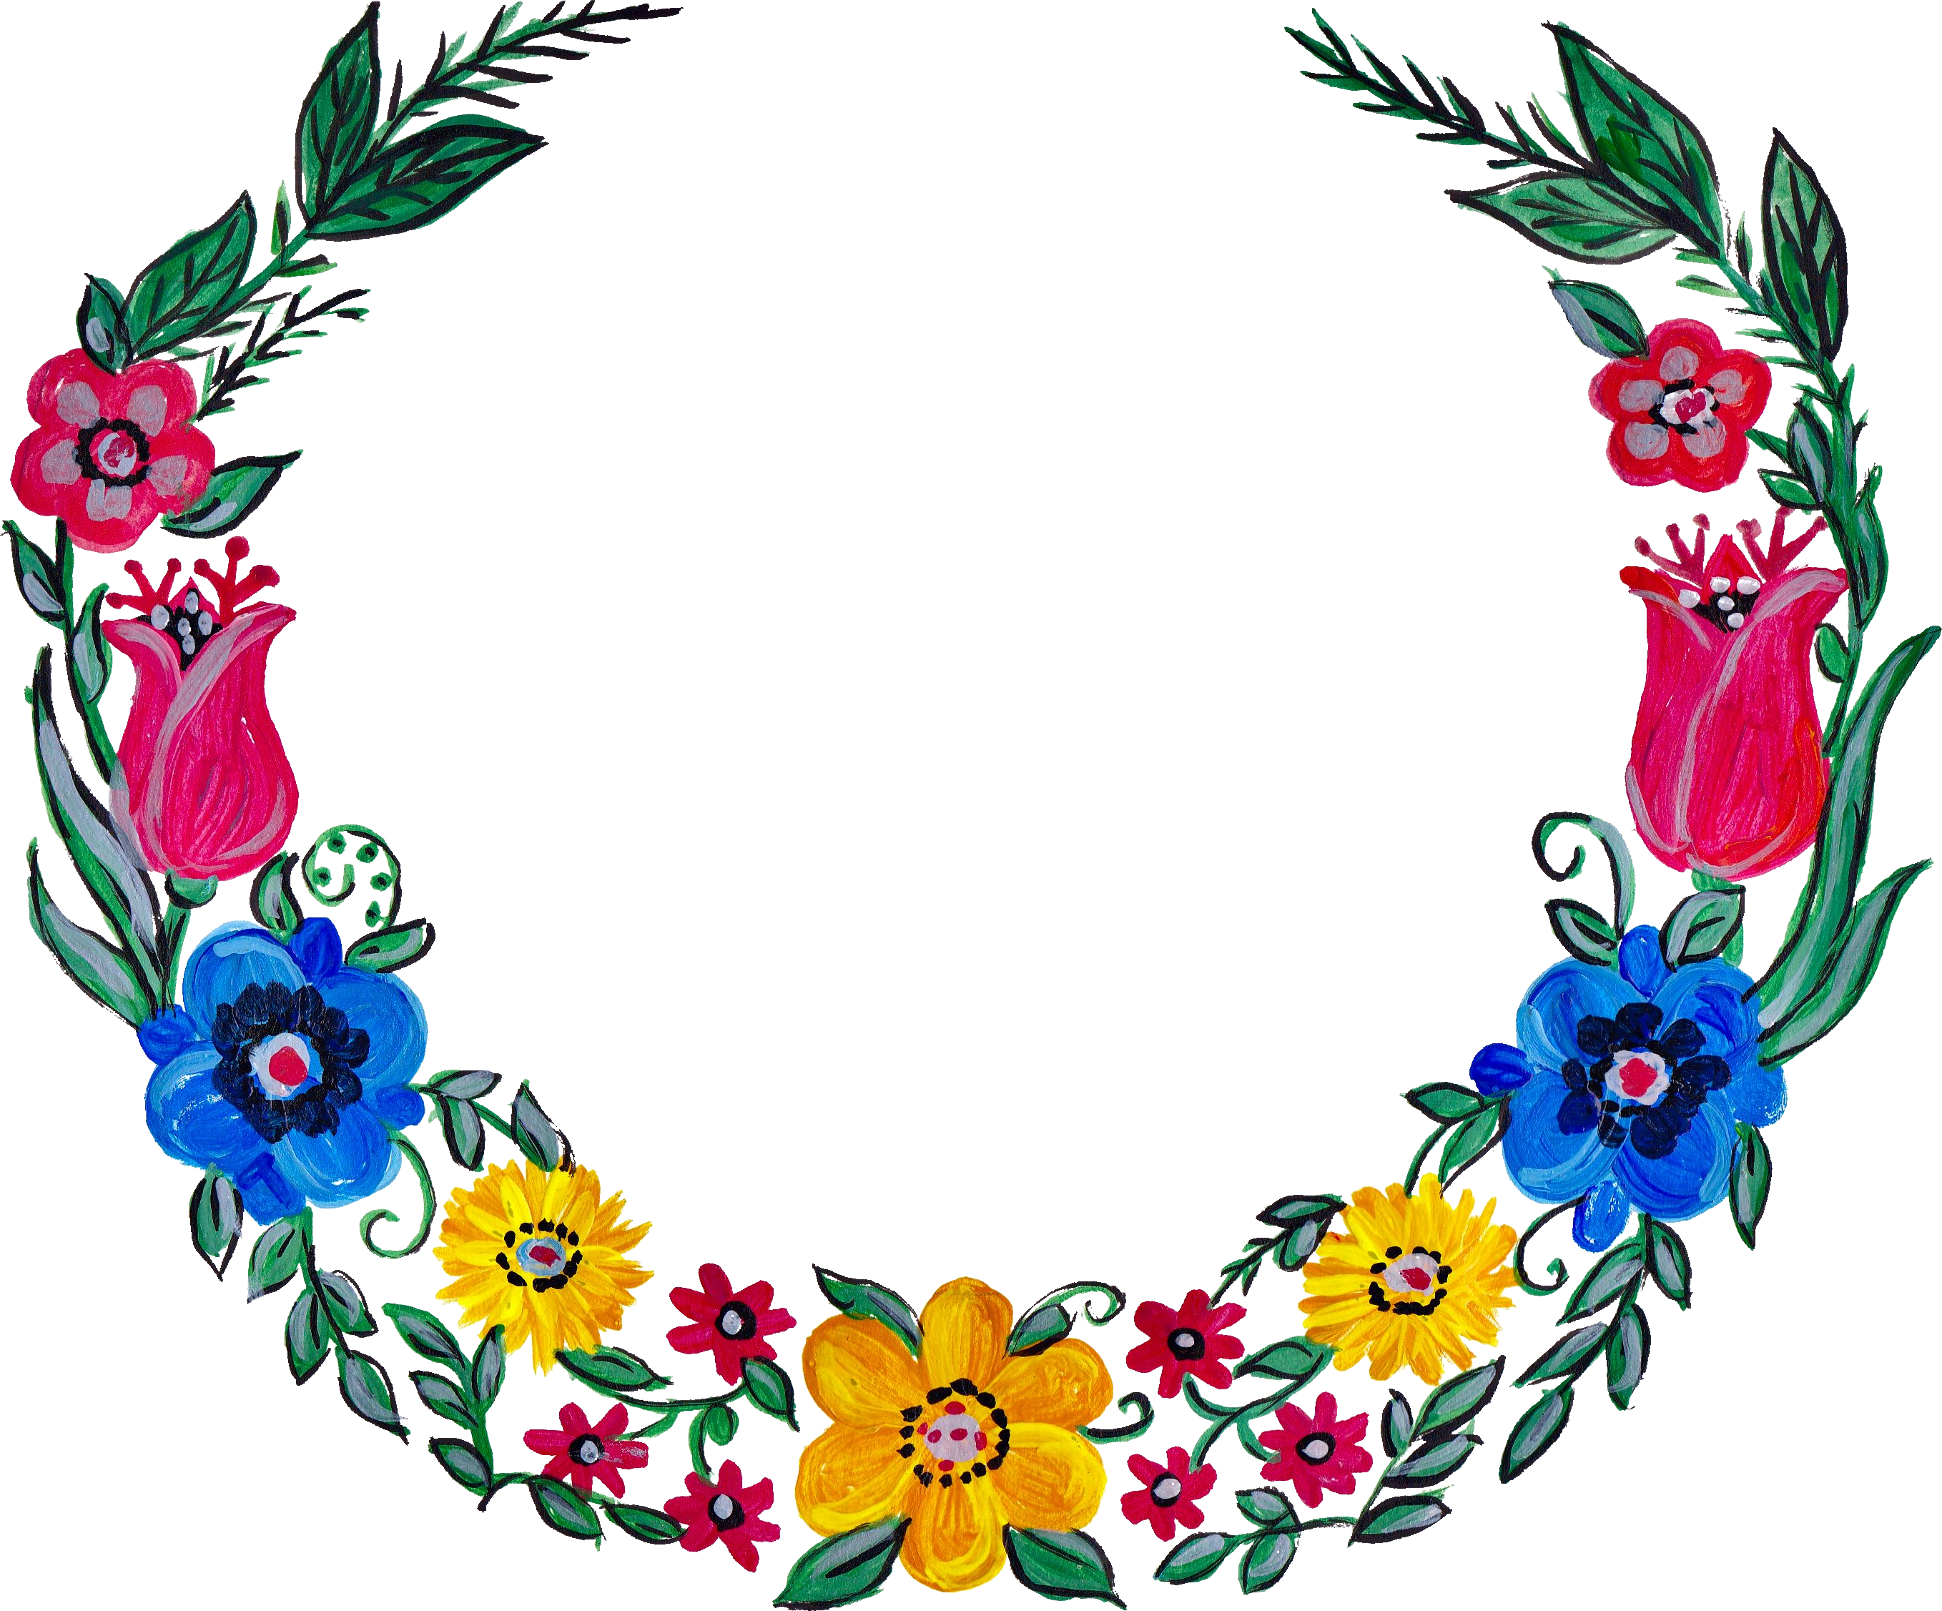 4 Flower Wreath Painting Png Transparent Onlygfx Com